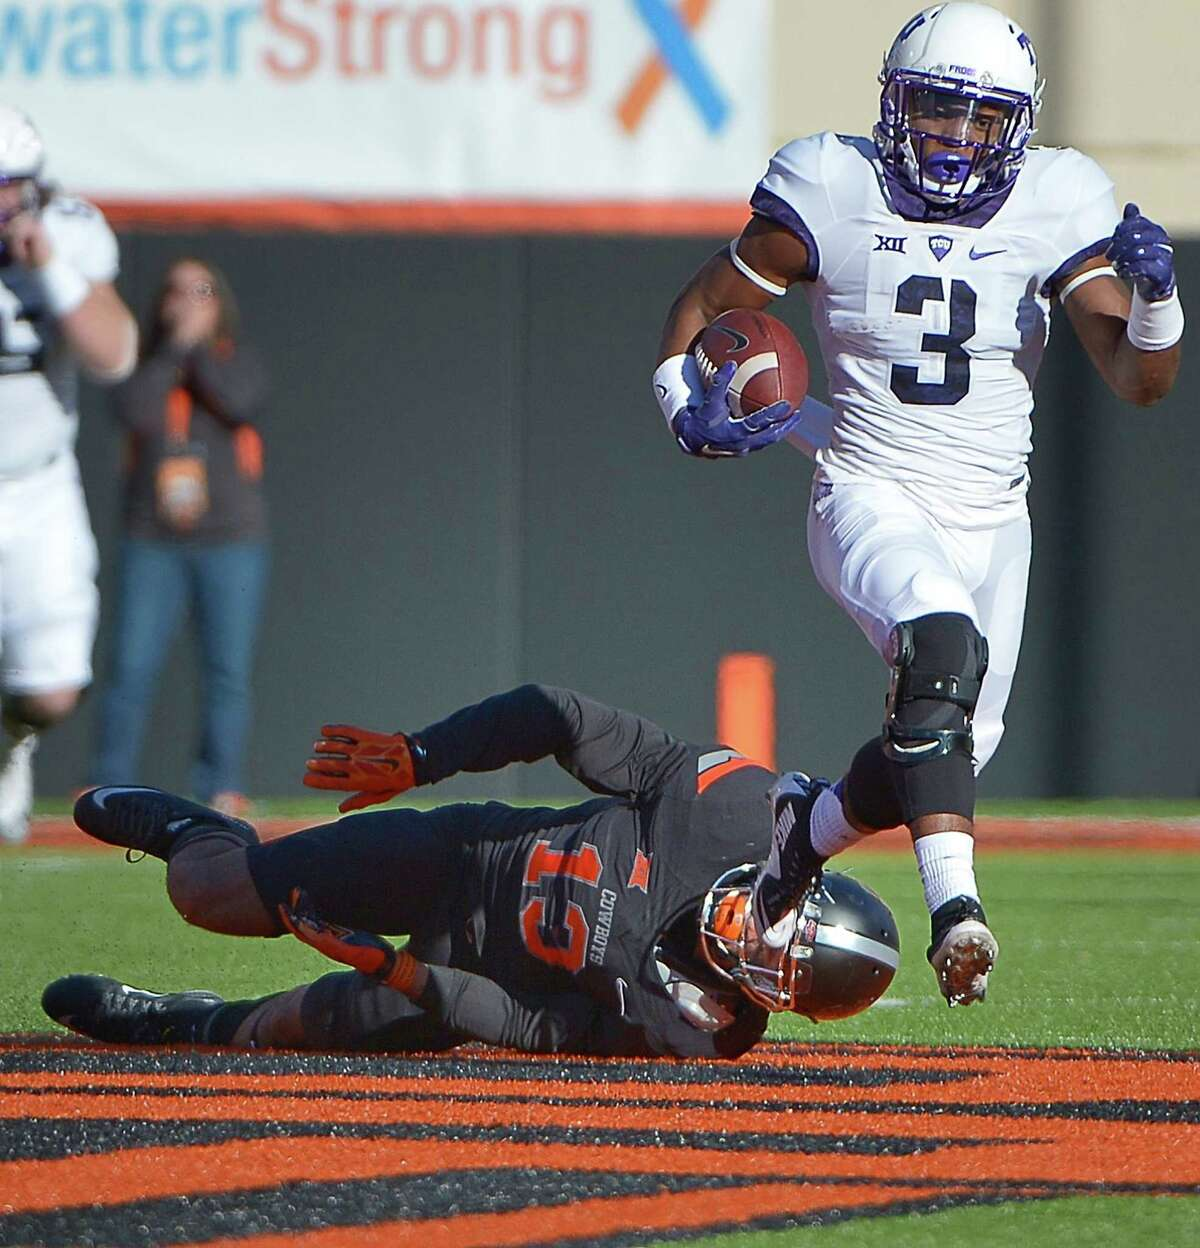 TCU running back Shaun Nixon (3) takes the ball for 70 yards on a pass play, evading Oklahoma State safety Jordan Sterns (13) during the first quarter at Boone Pickens Stadium in Stillwater, Okla., on Saturday, Nov. 7, 2015. The host Cowboys won, 49-29. (Max Faulkner/Fort Worth Star-Telegram/TNS)